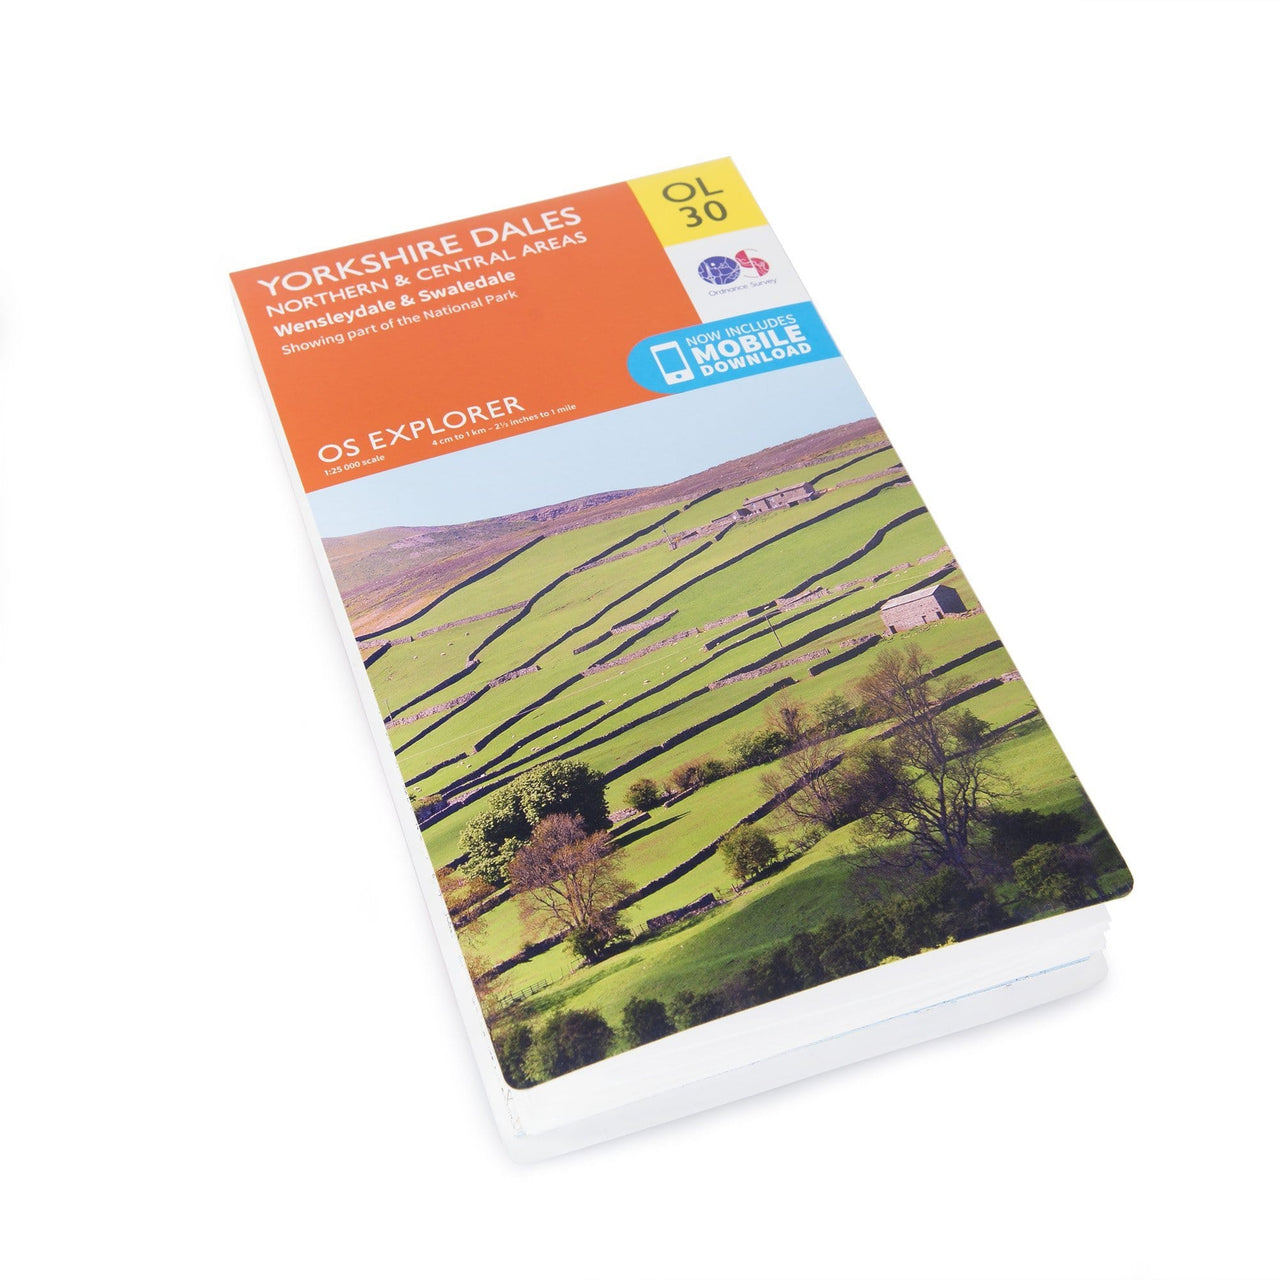 OS Explorer Maps: Yorkshire Dales; Northern and Central